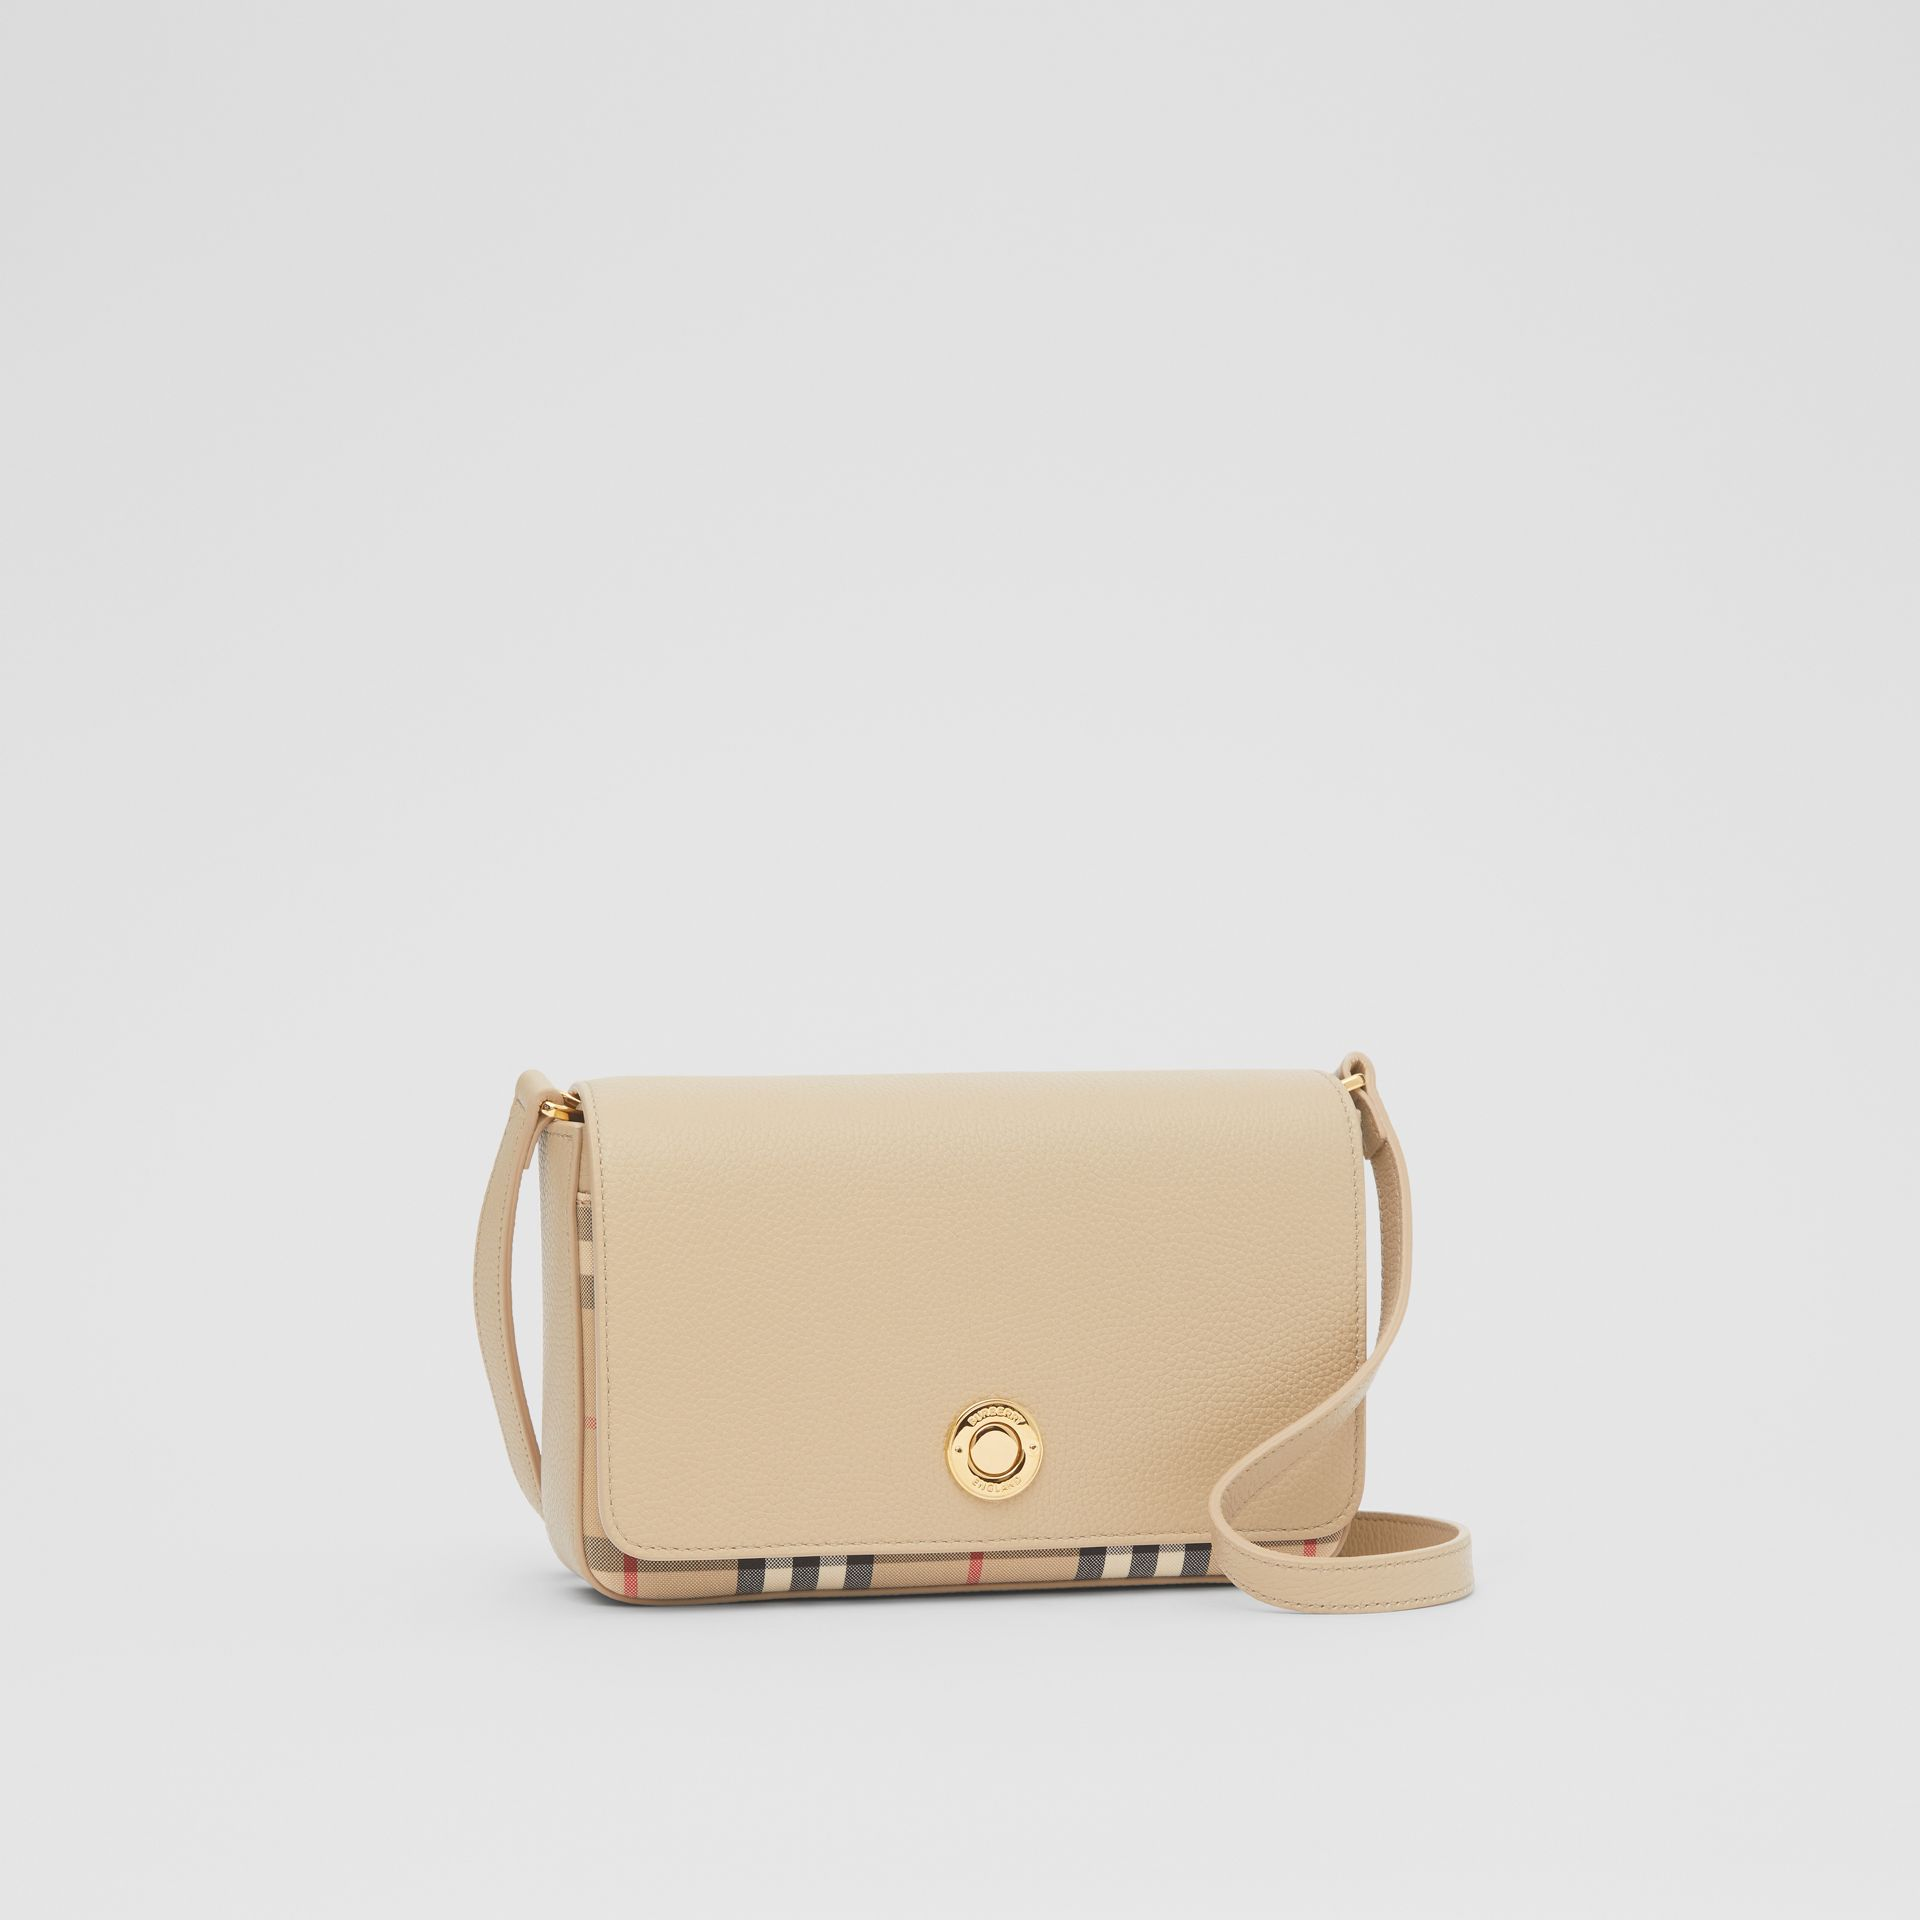 Small Leather and Vintage Check Crossbody Bag in Light Beige - Women | Burberry United Kingdom - gallery image 4